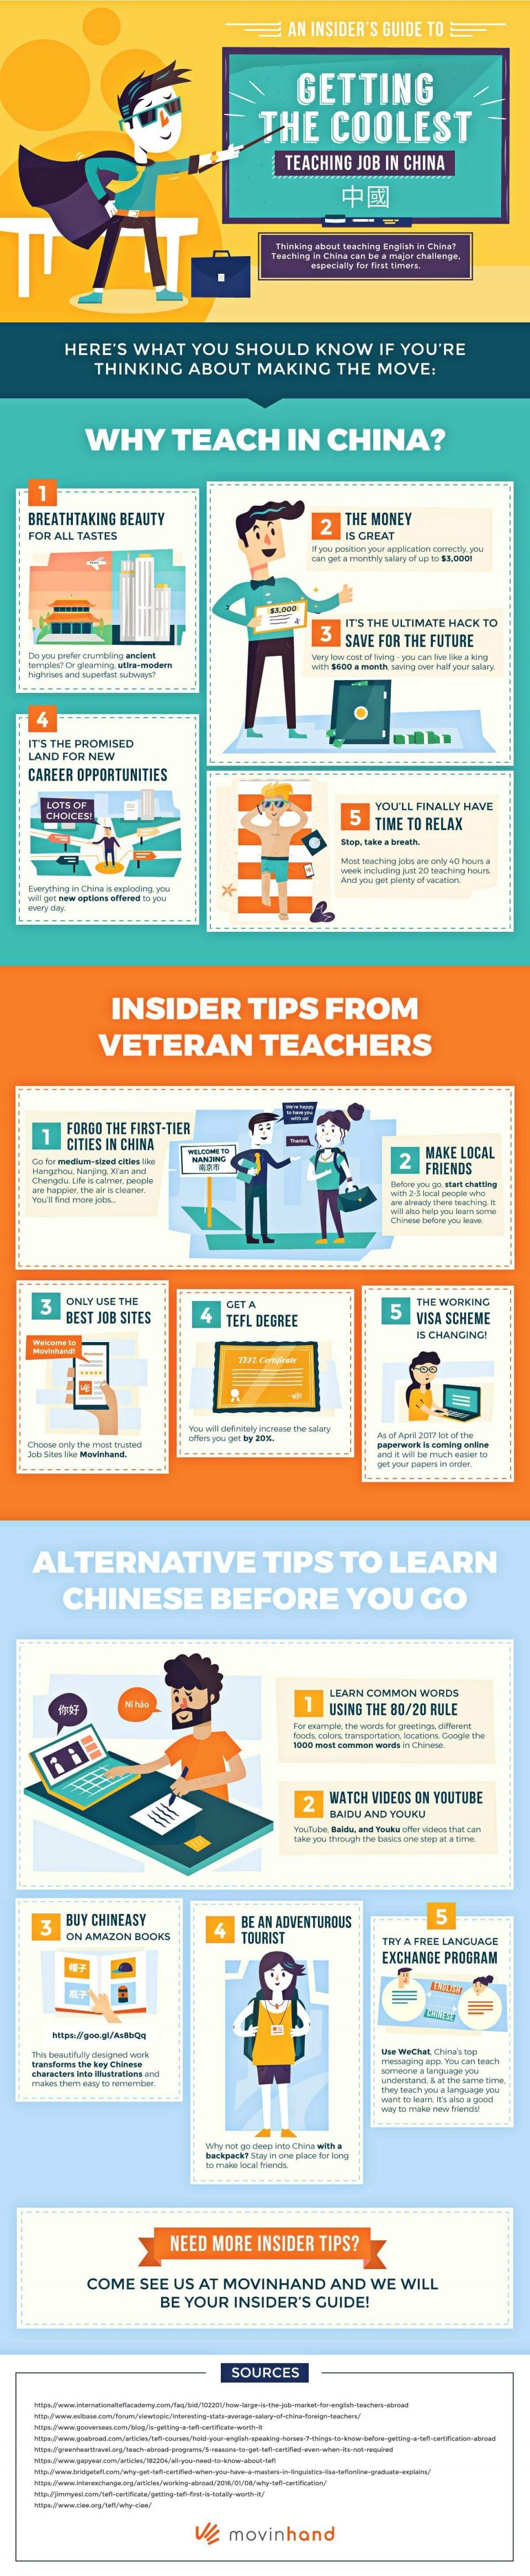 How to Get the Coolest Teaching Job in China Infographic